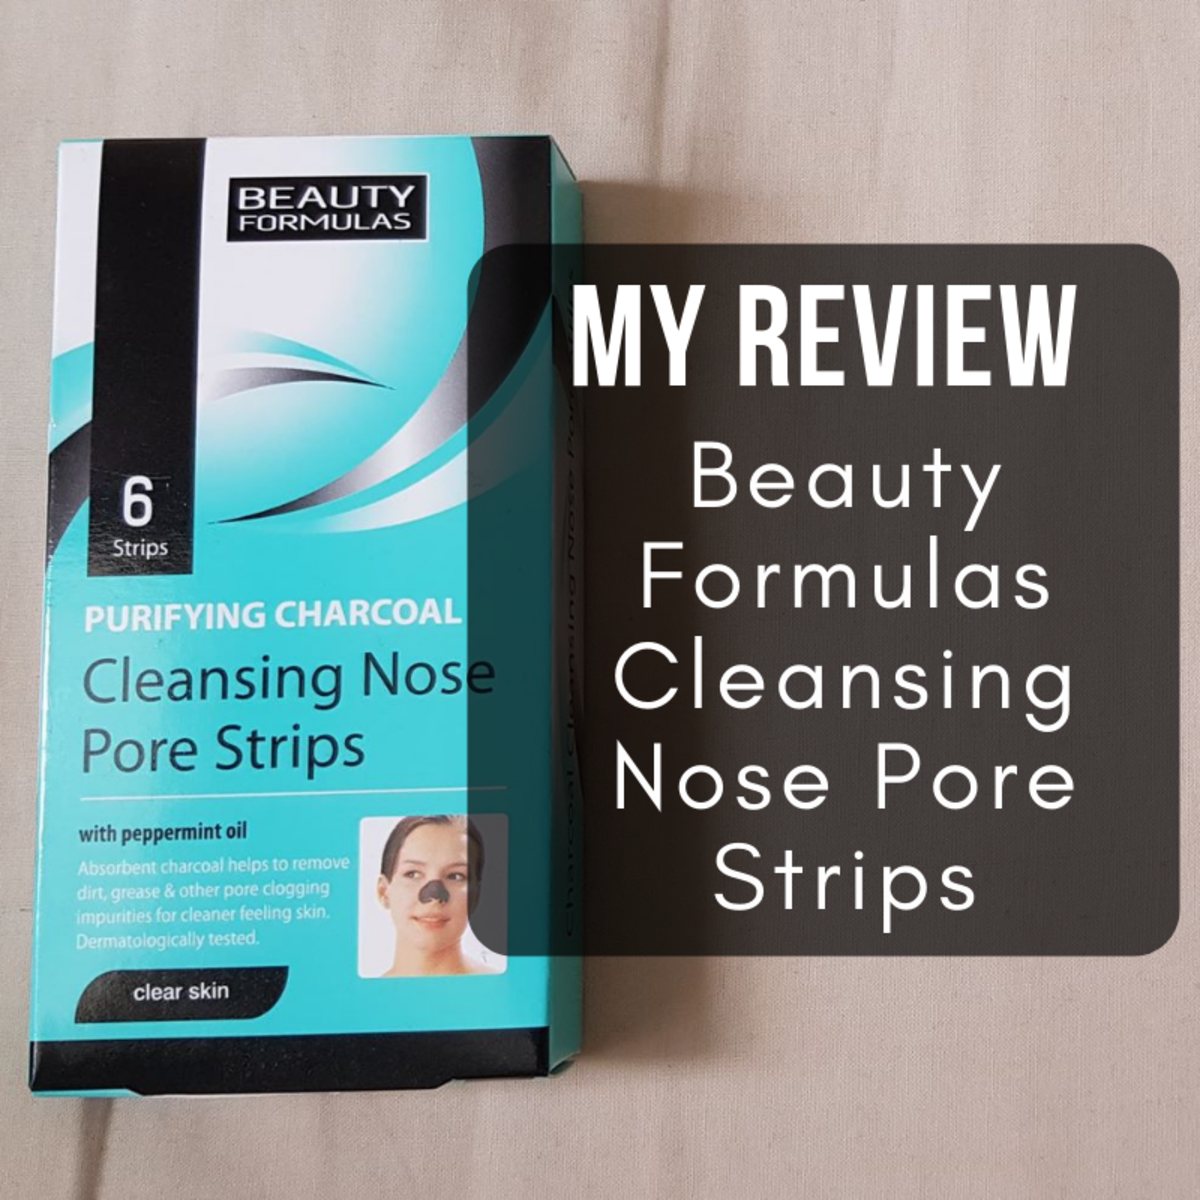 My Review of Beauty Formulas Purifying Charcoal Cleansing Nose Pore Strips